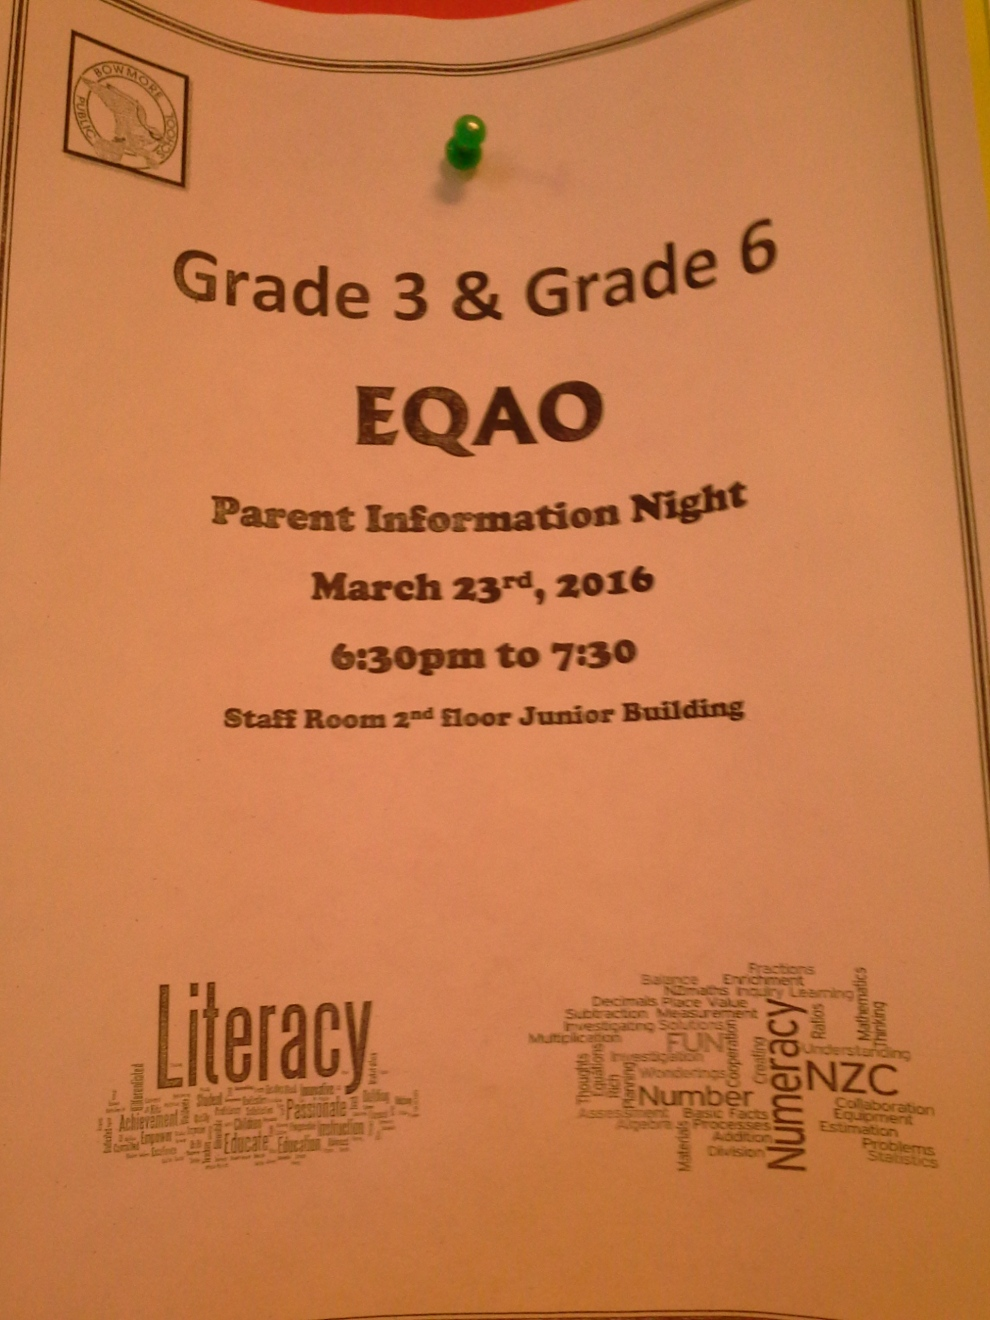 Grade 3 and Grade 6 EQAO Parent Information Night March 23 2016 from 6:30 pm to 7:30 In the Staff room on the second floor of the Junior Building